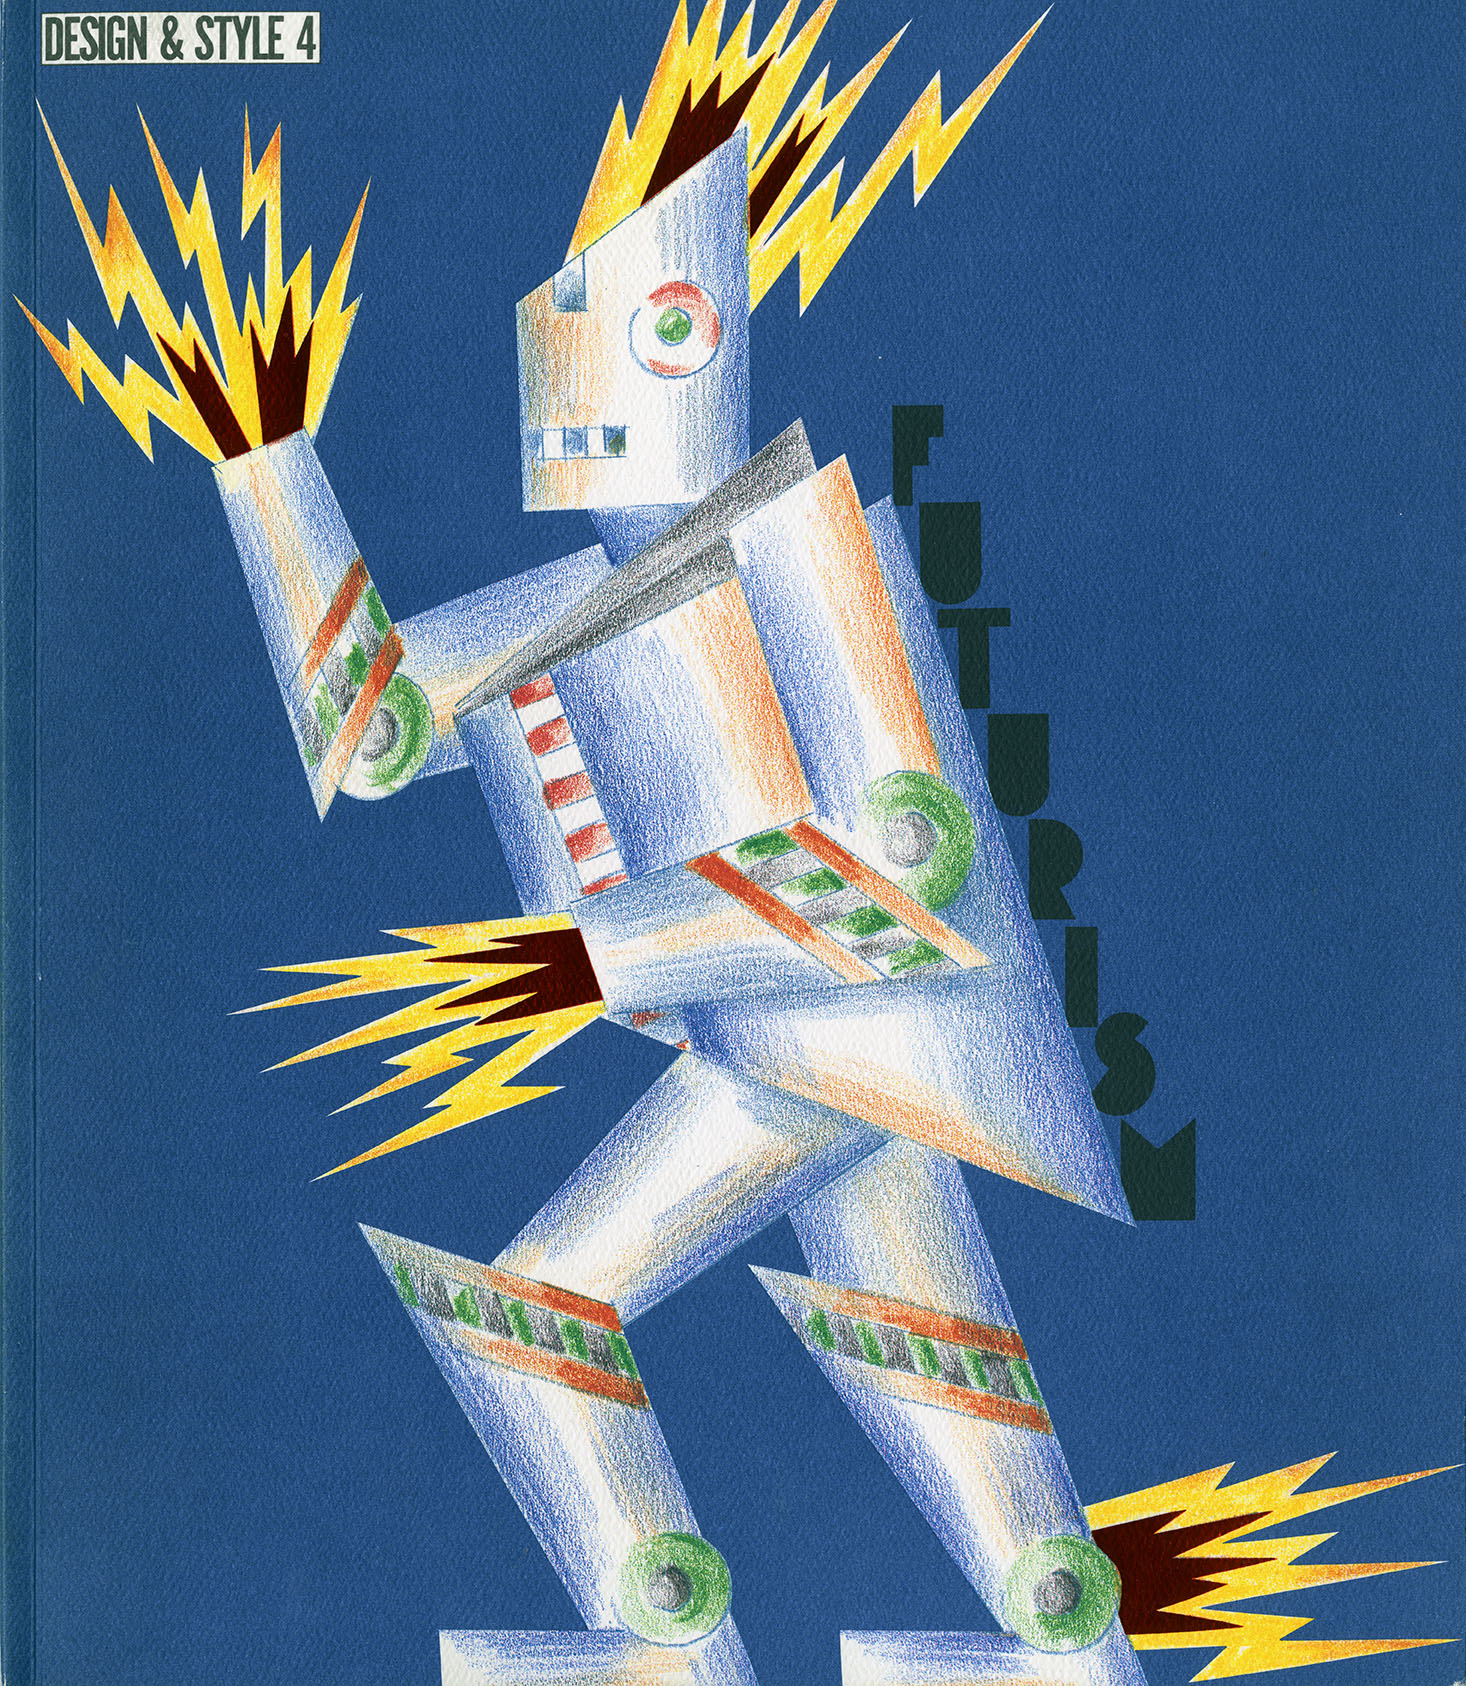 Colored pencil drawing of a robot with electricity emanating from him, against a blue background.